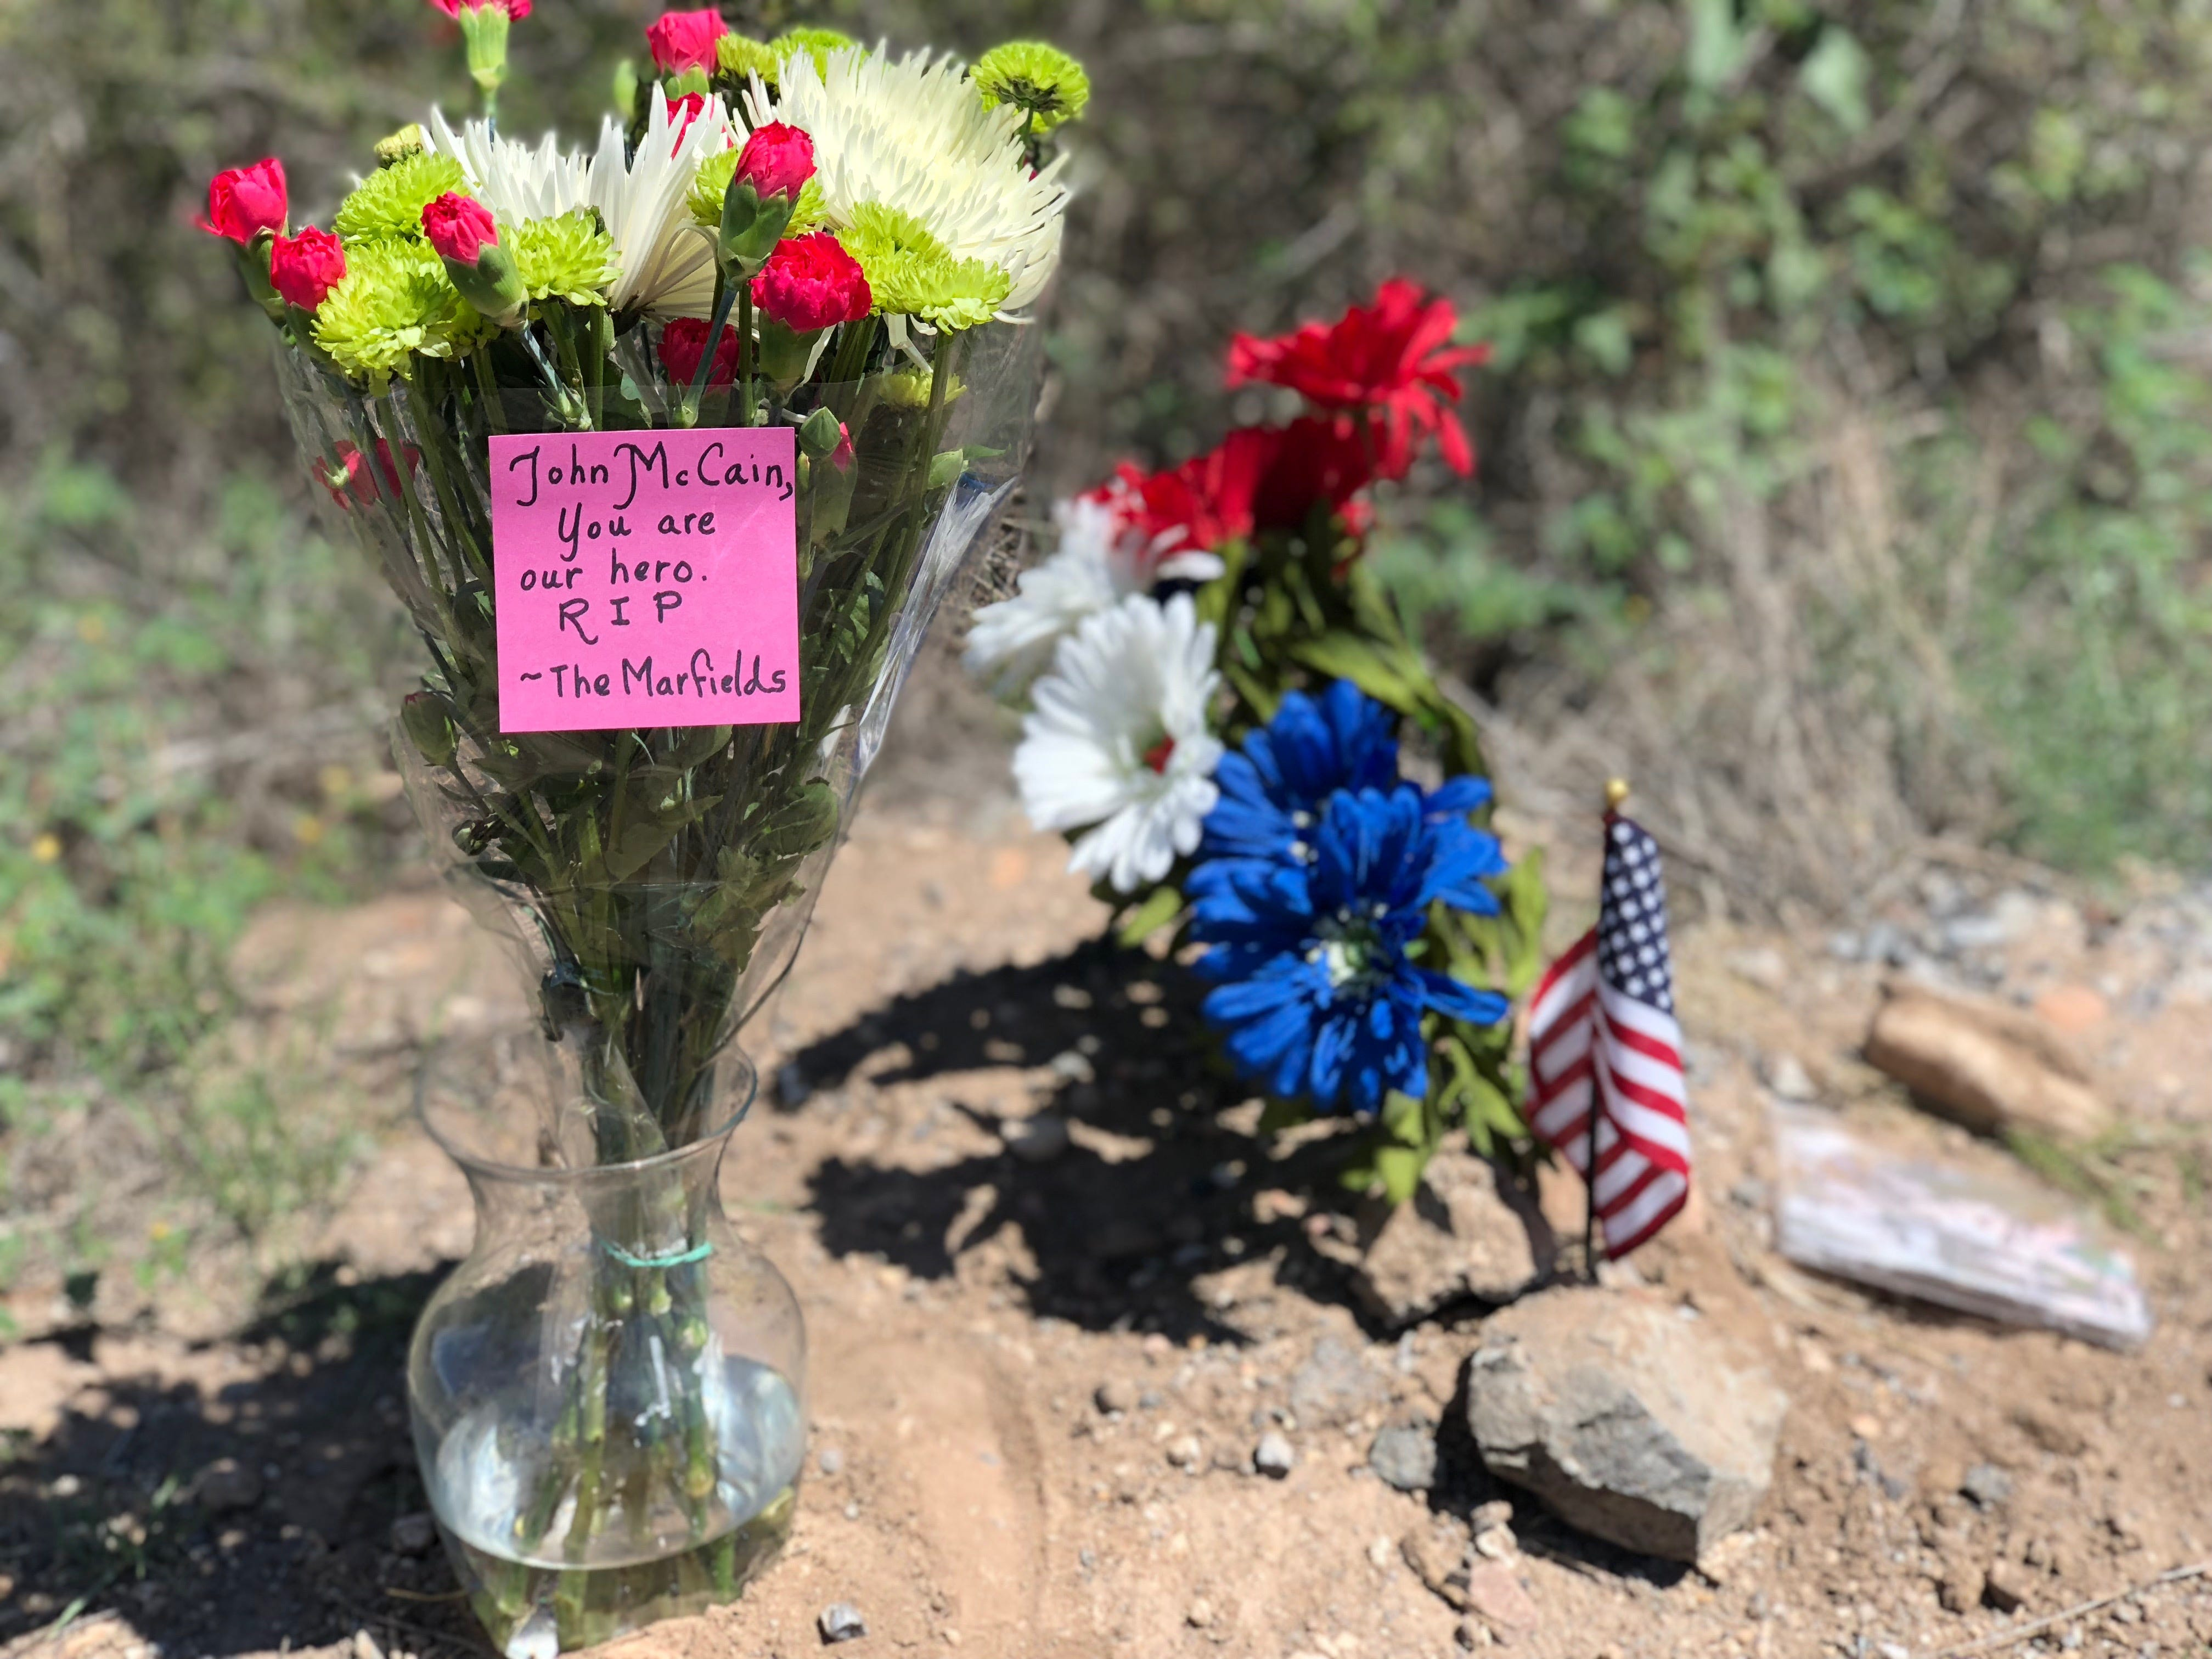 Visitors to a memorial near the McCain family's ranch left flowers, small American flags and letters for the senator's family.